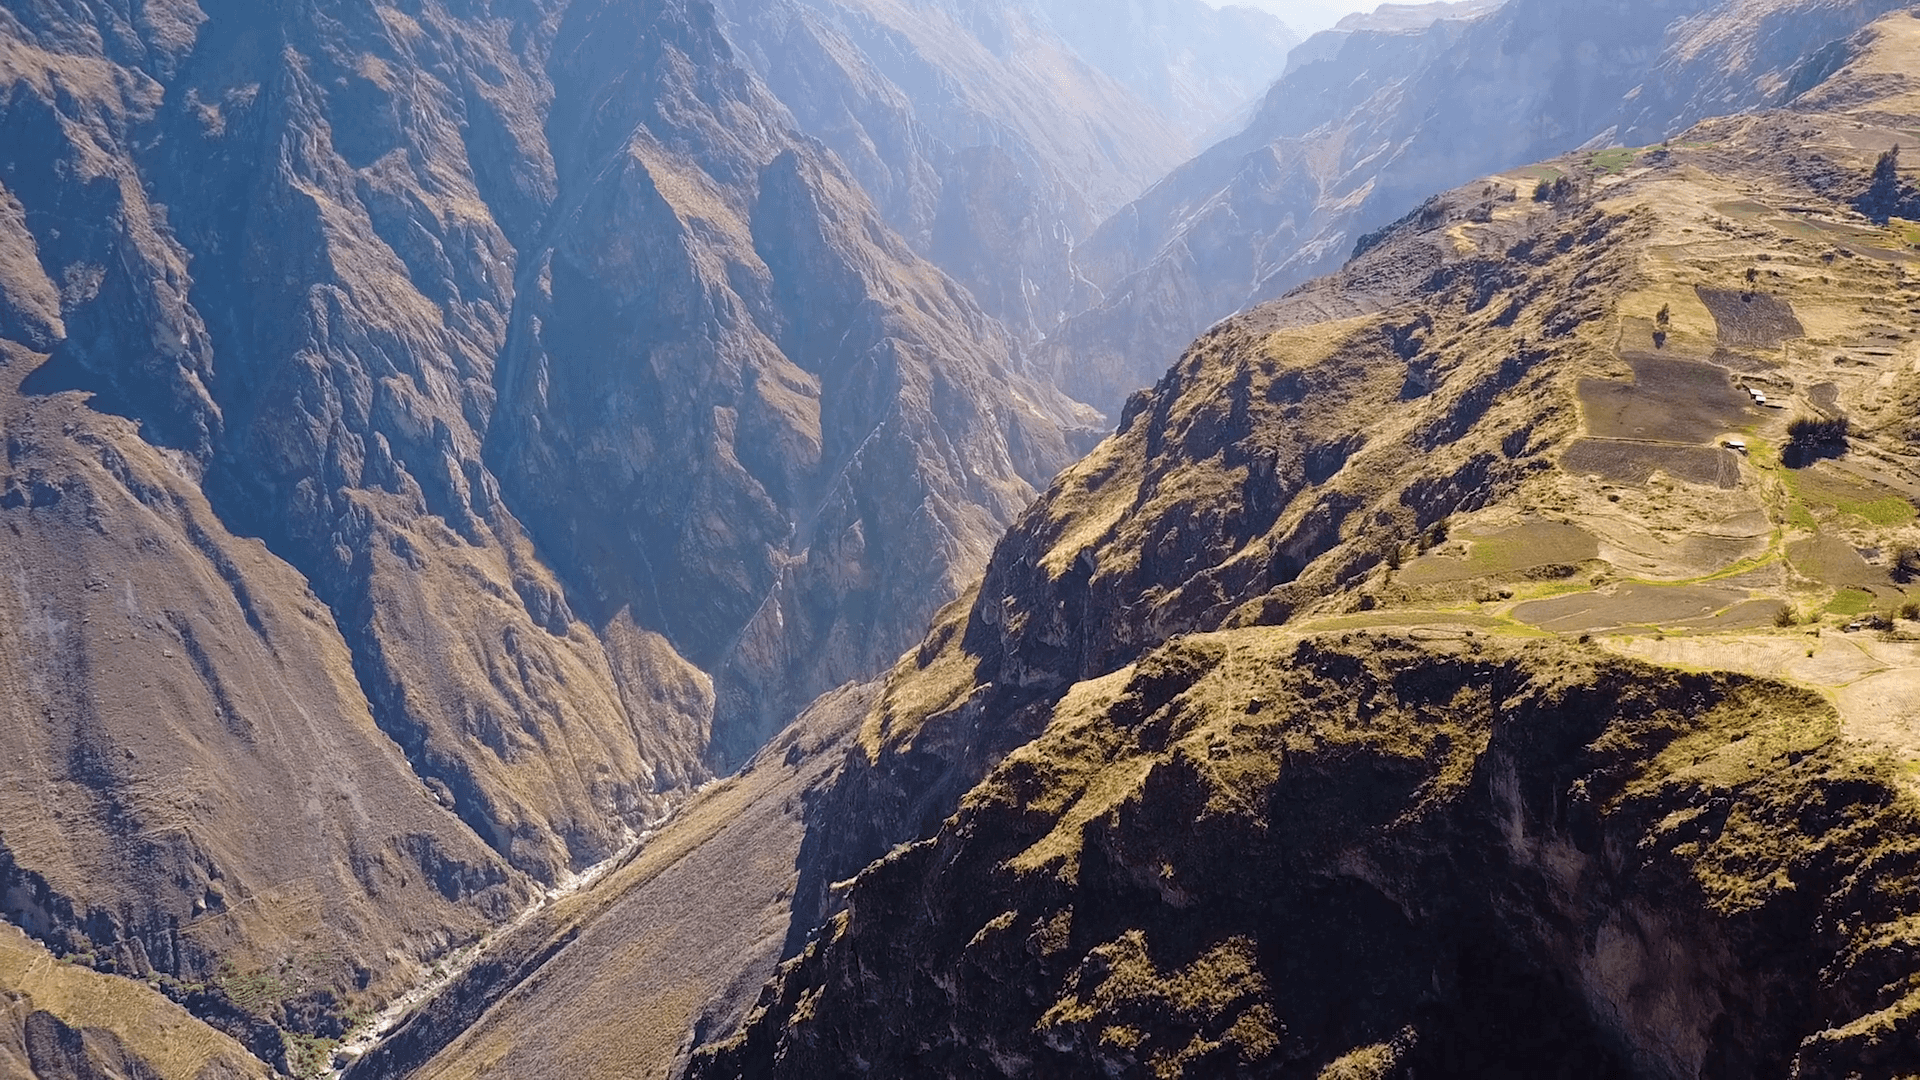 Drone aerial flying sideways over the massive Colca Canyon valley in